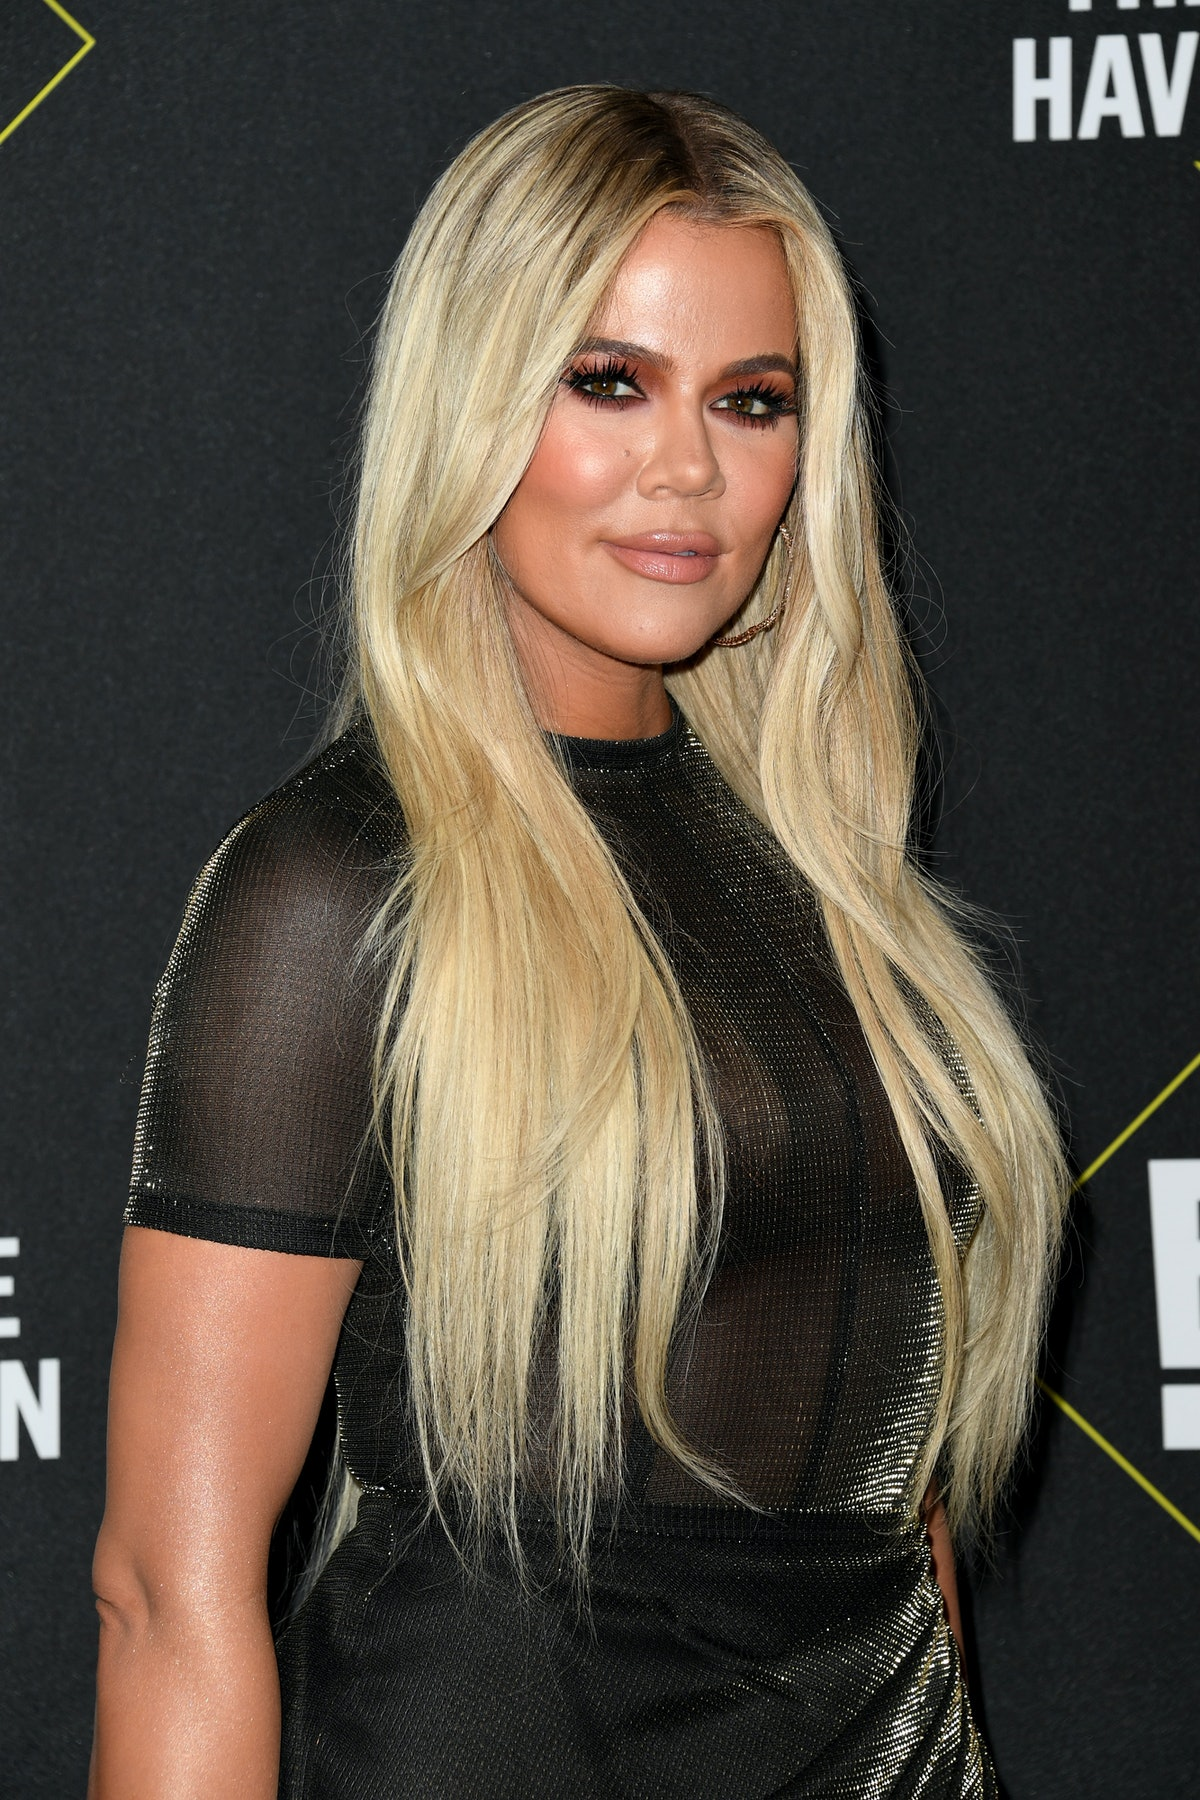 Khloé Kardashian is embracing her naturally curly hair and fans are loving it.